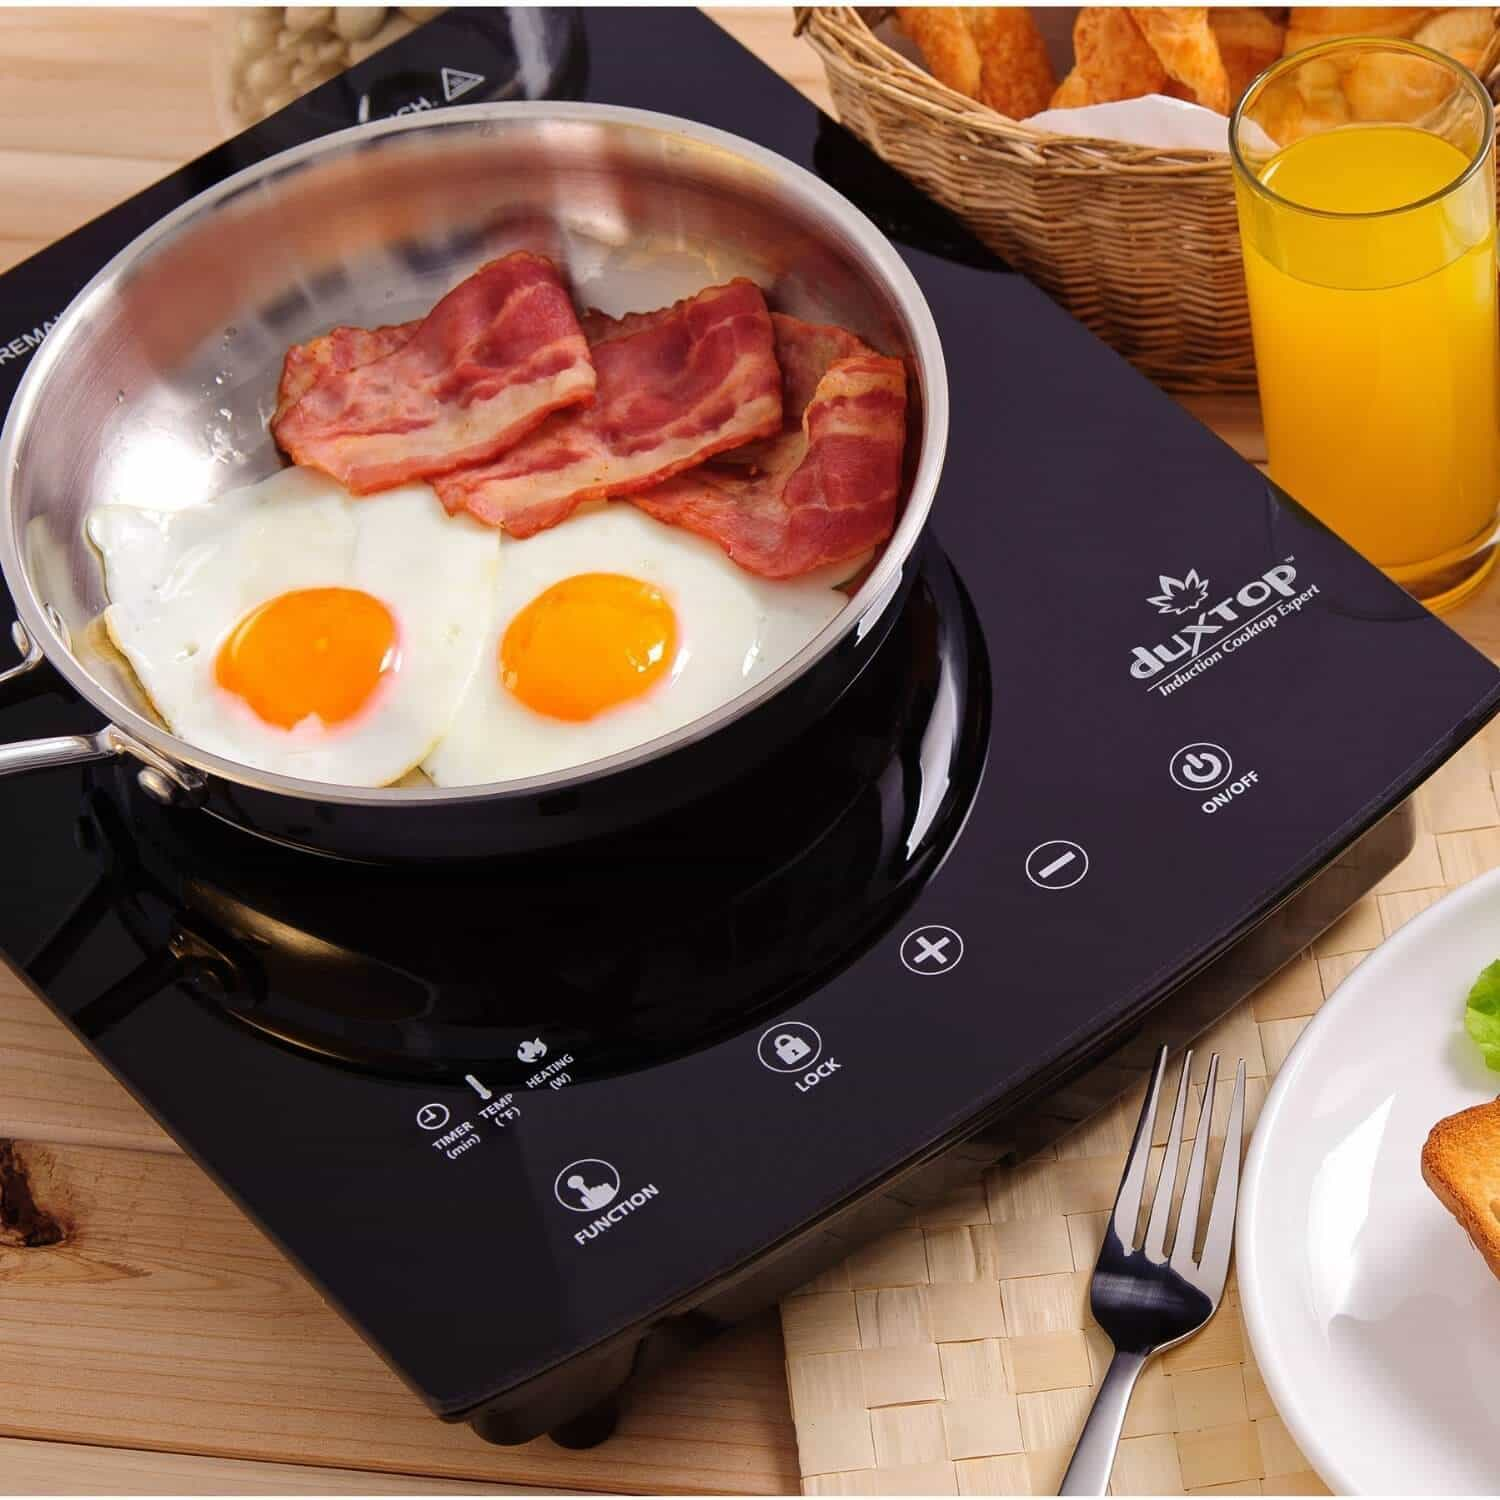 Duxtop 8300st Portable Induction Cooktop Review Amp Giveaway